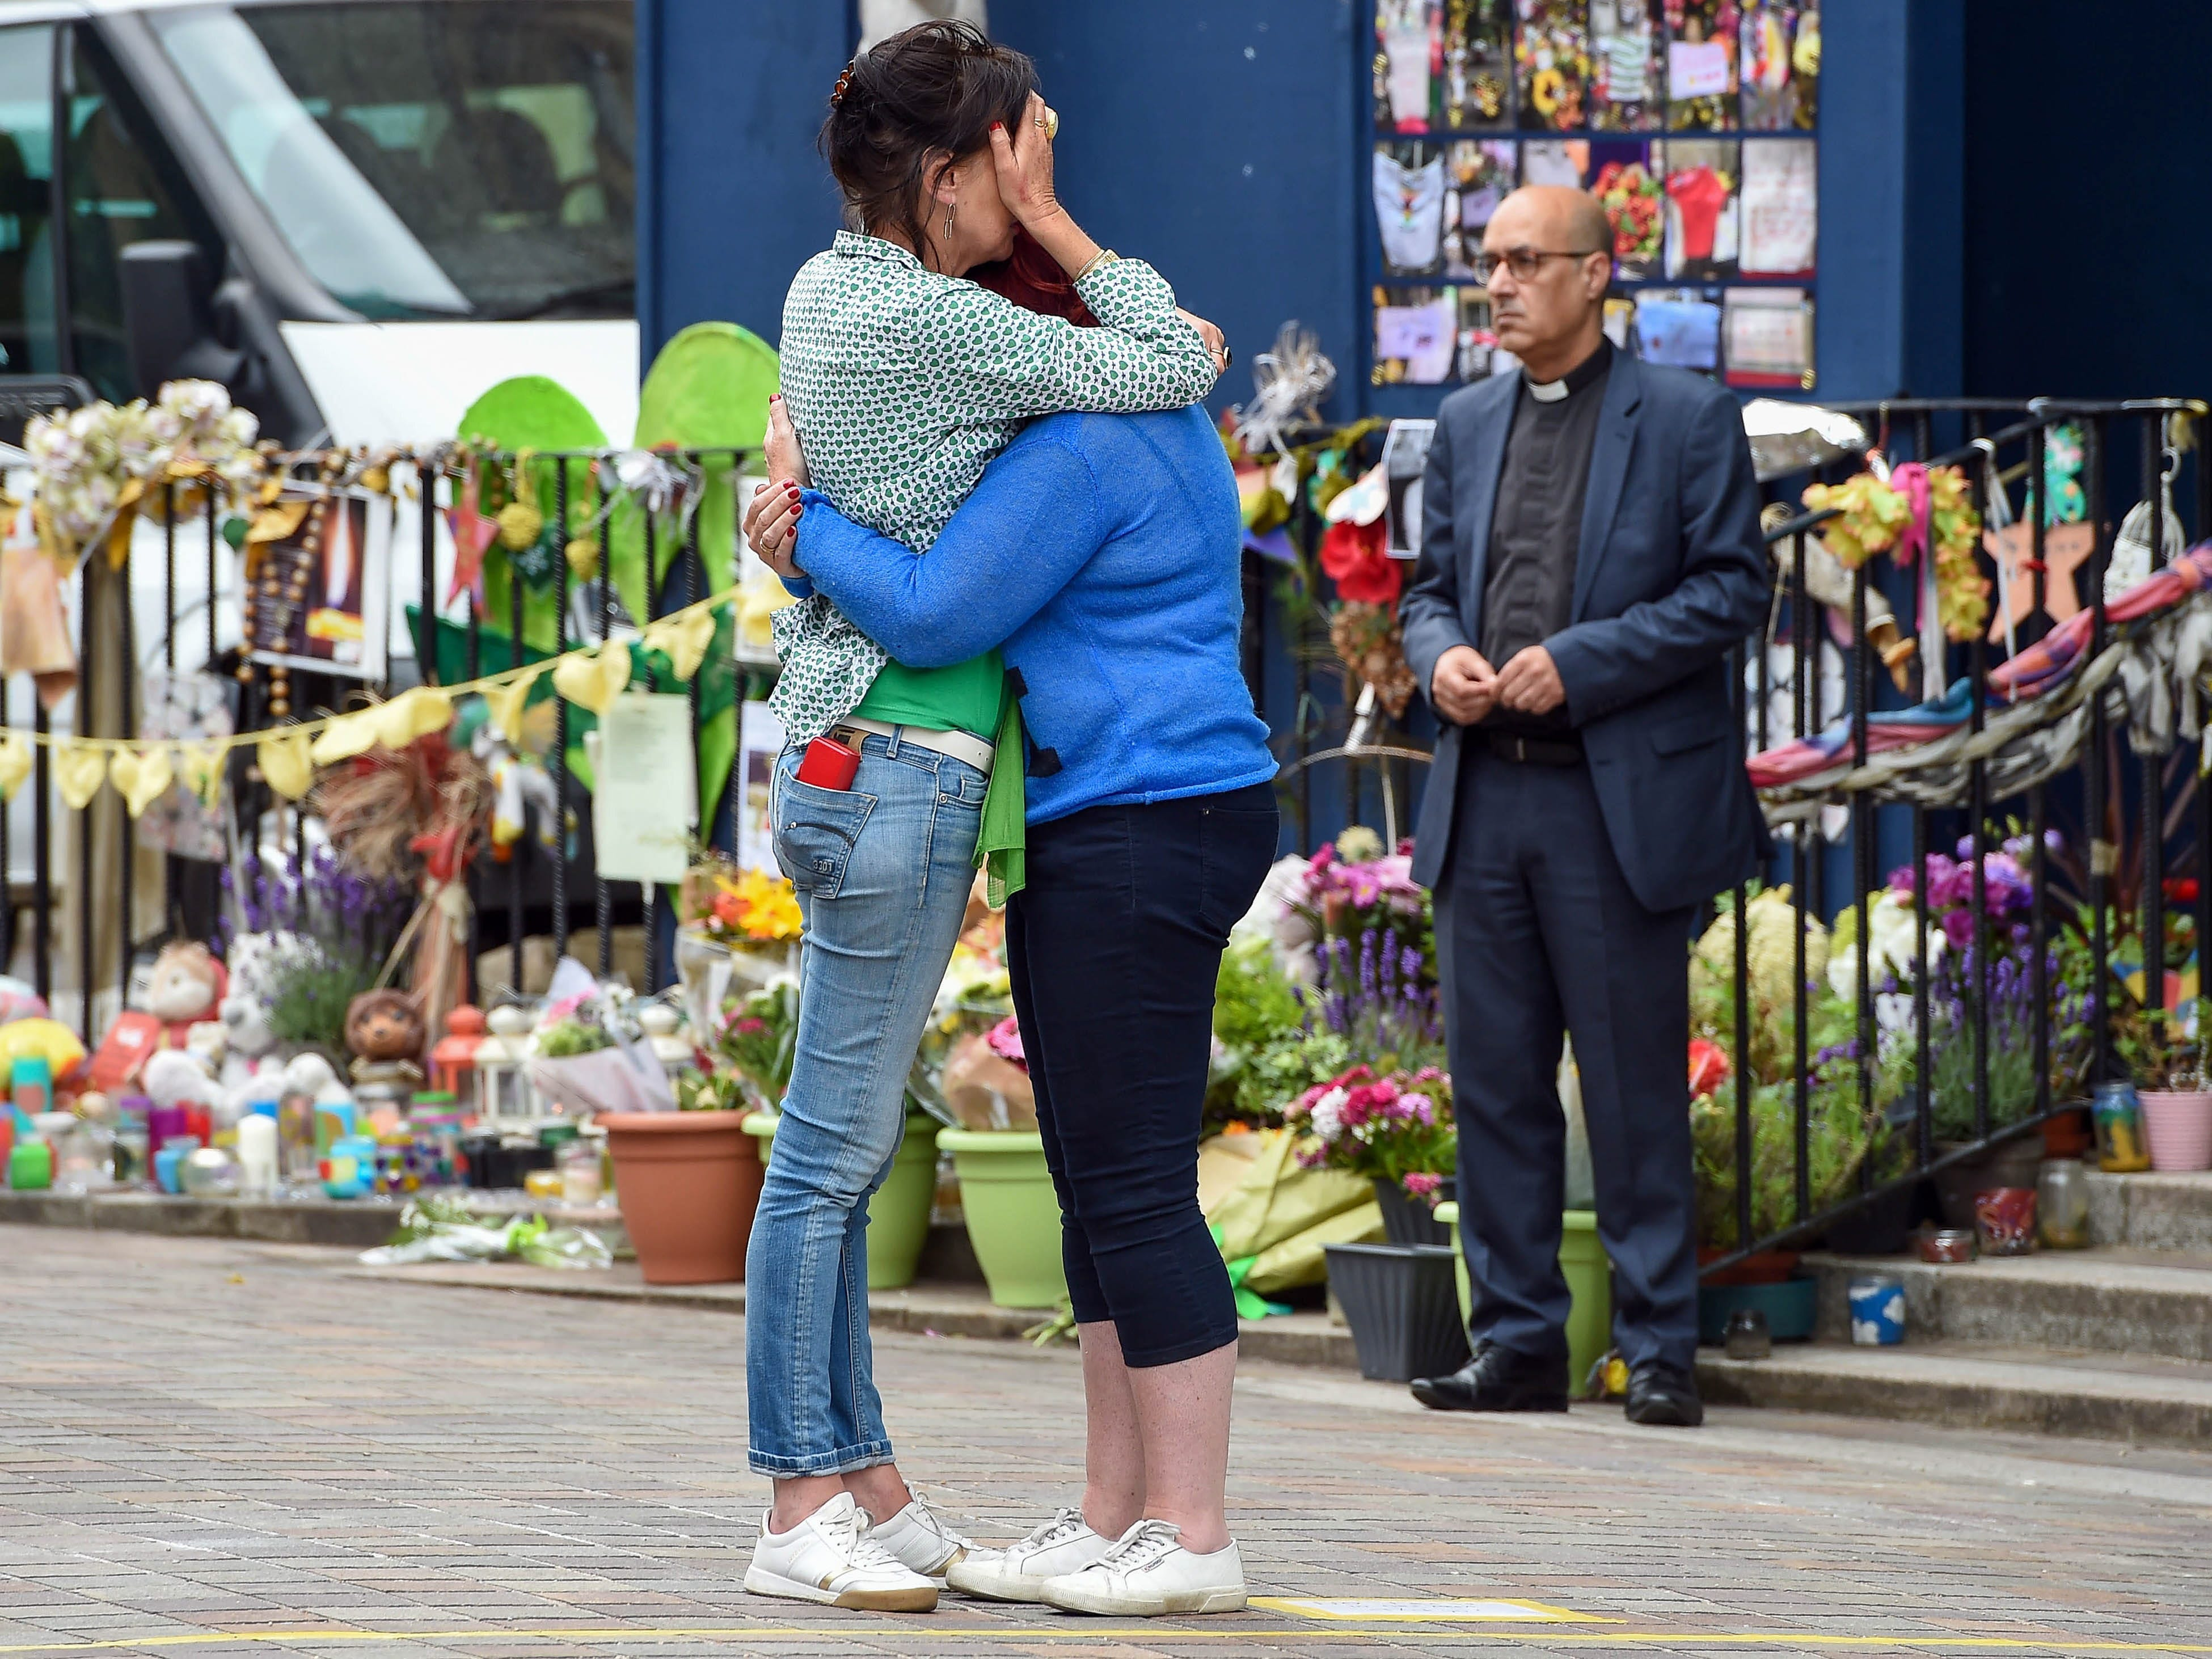 Two women comfort each other outside Notting Hill Methodist church, on the first anniversary of the Grenfell Tower fire in London, June 14, 2018. The fire devastated the 24-story North Kensington tower block on June 14, 2017 killing 72 residents.